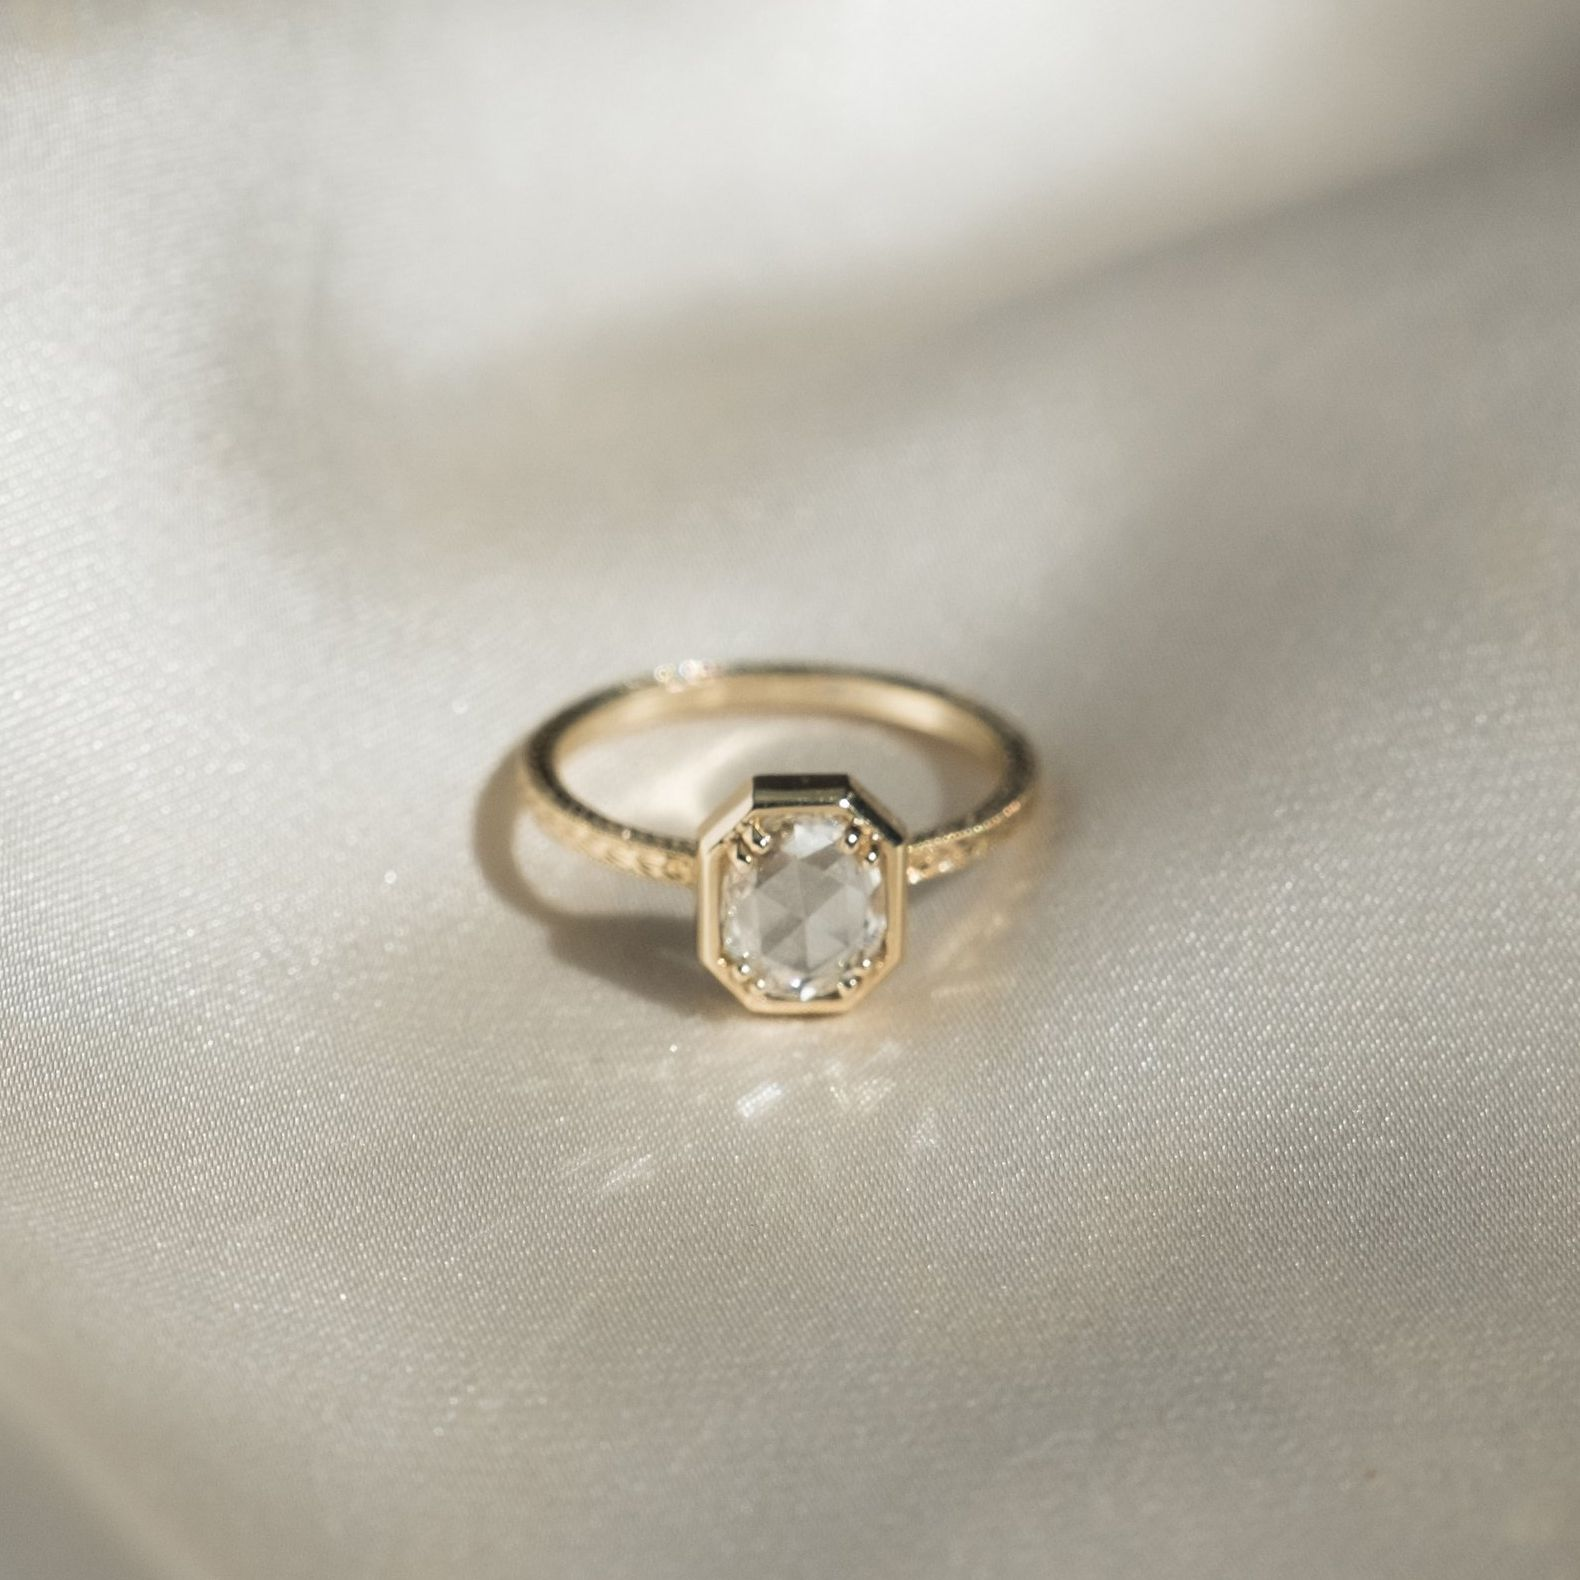 Bezel Engagement Ring Setting The Complete Guide